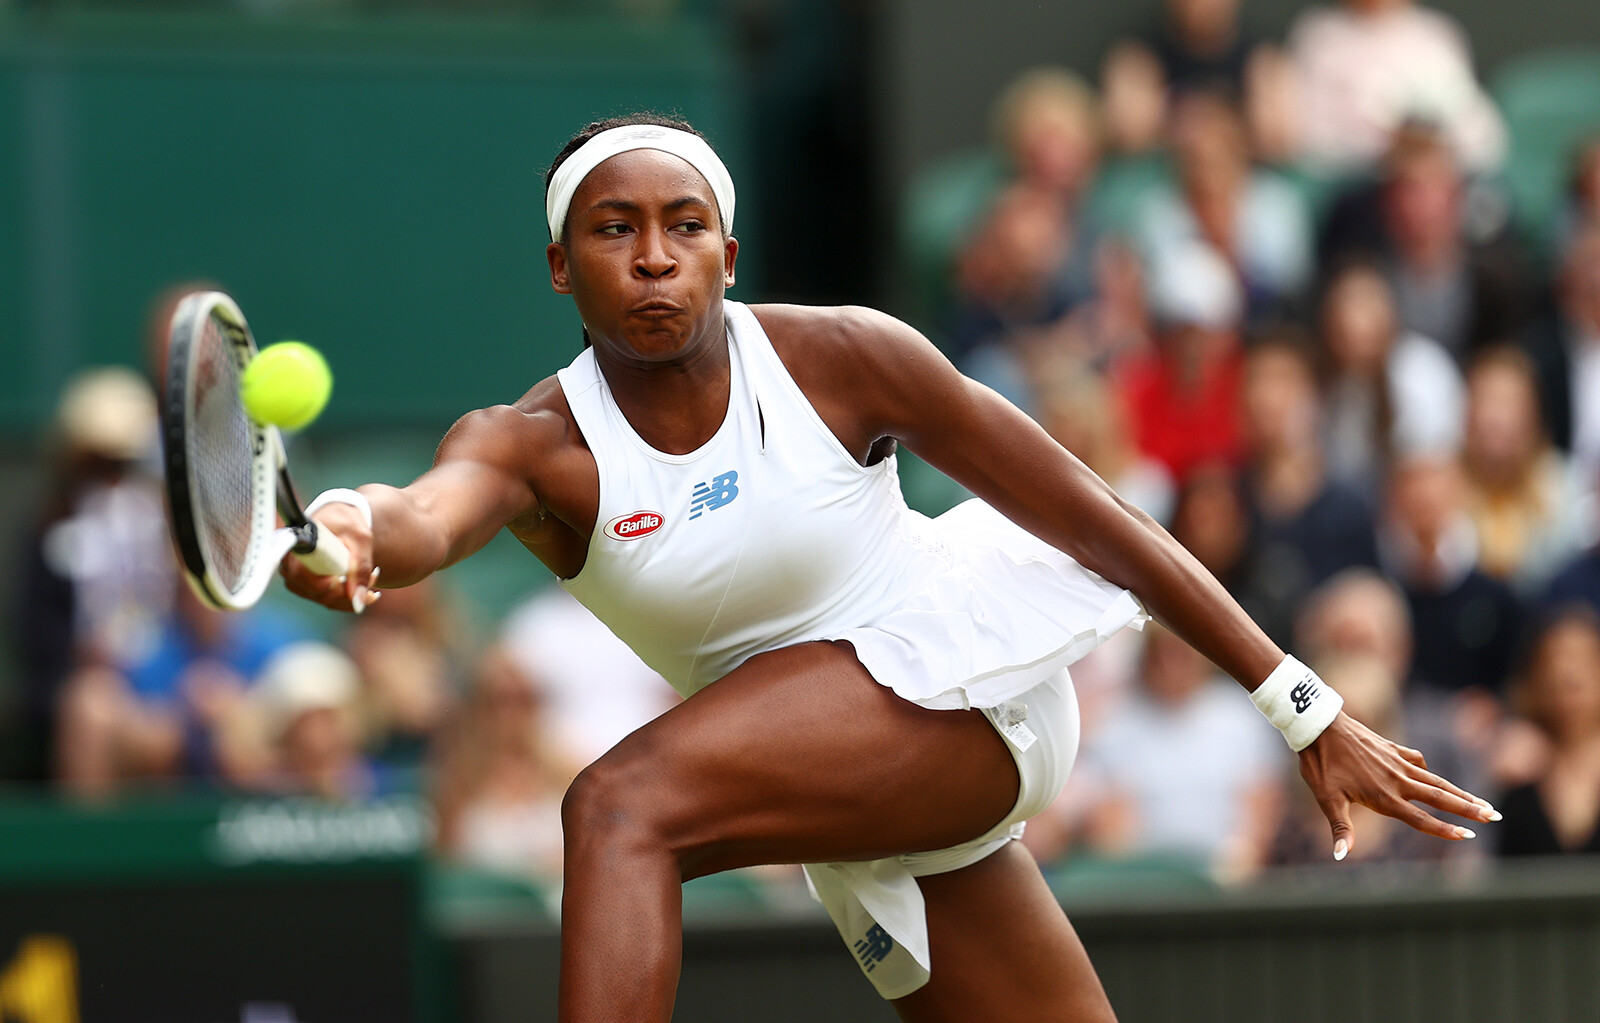 Cori 'Coco' Gauff will miss the Tokyo Olympics after testing positive for Covid-19